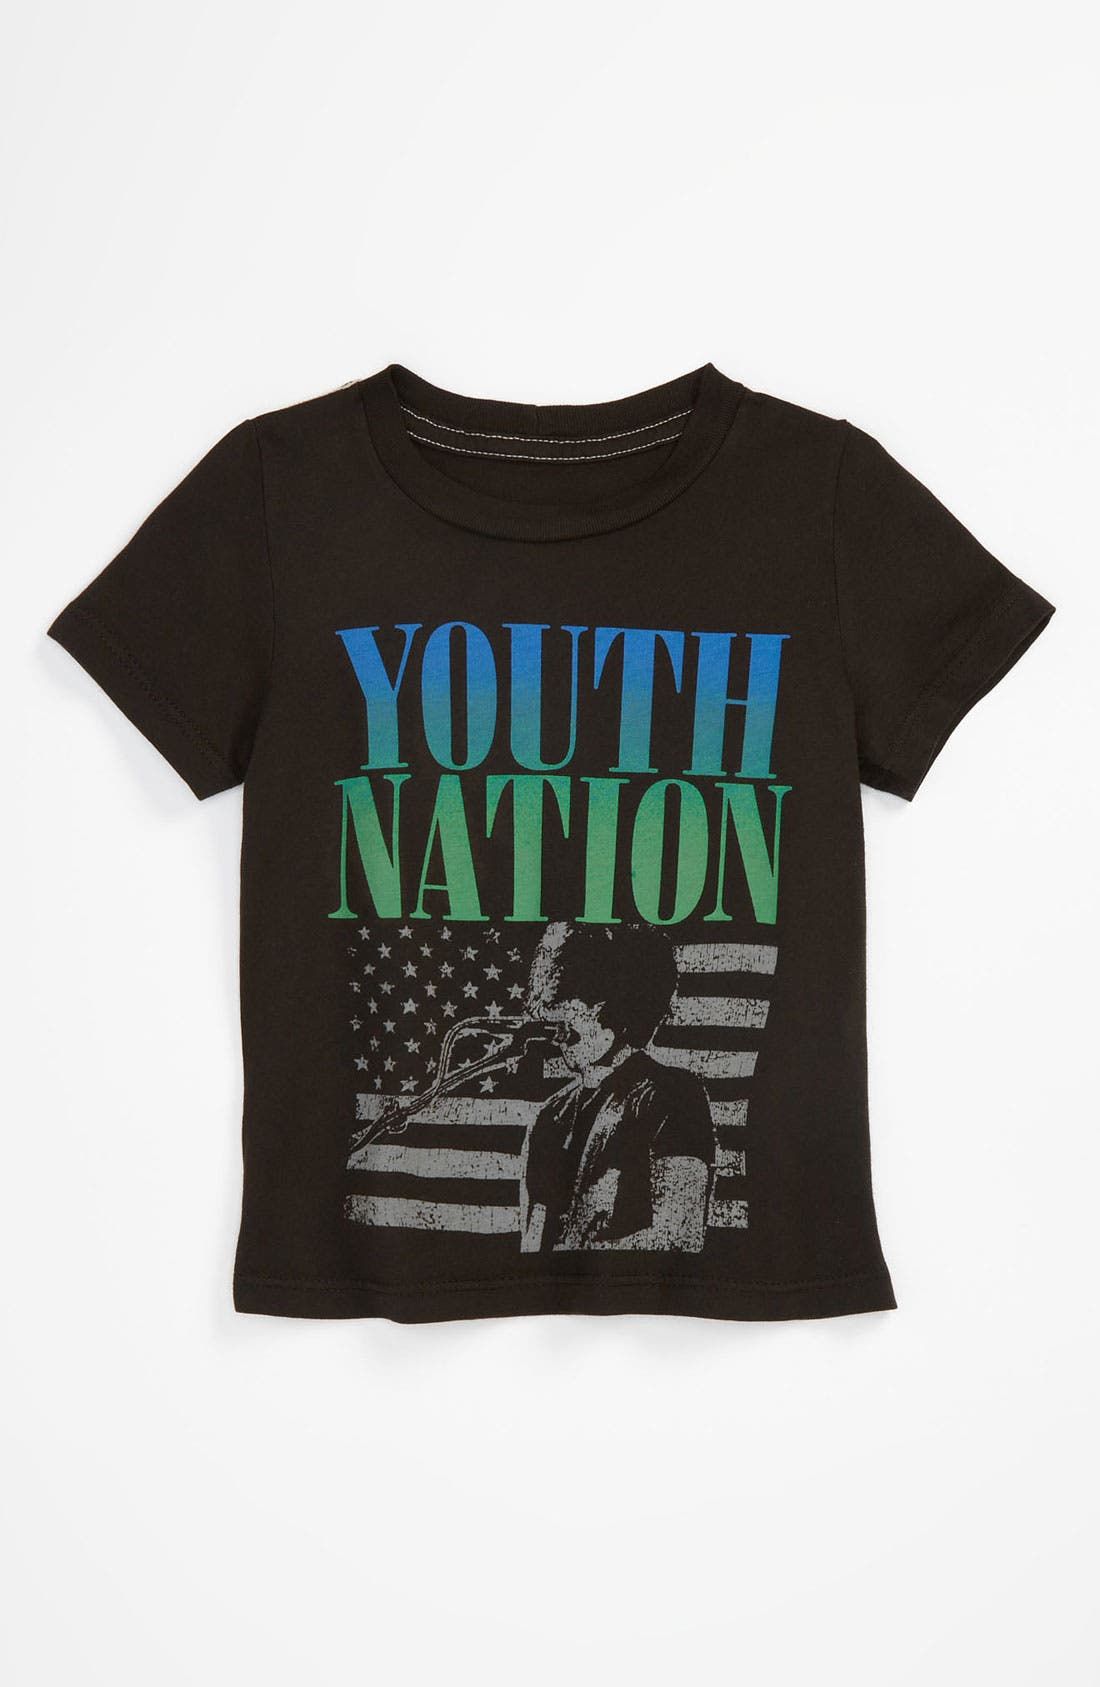 Alternate Image 1 Selected - Peek 'Youth Nation' T-Shirt (Infant)